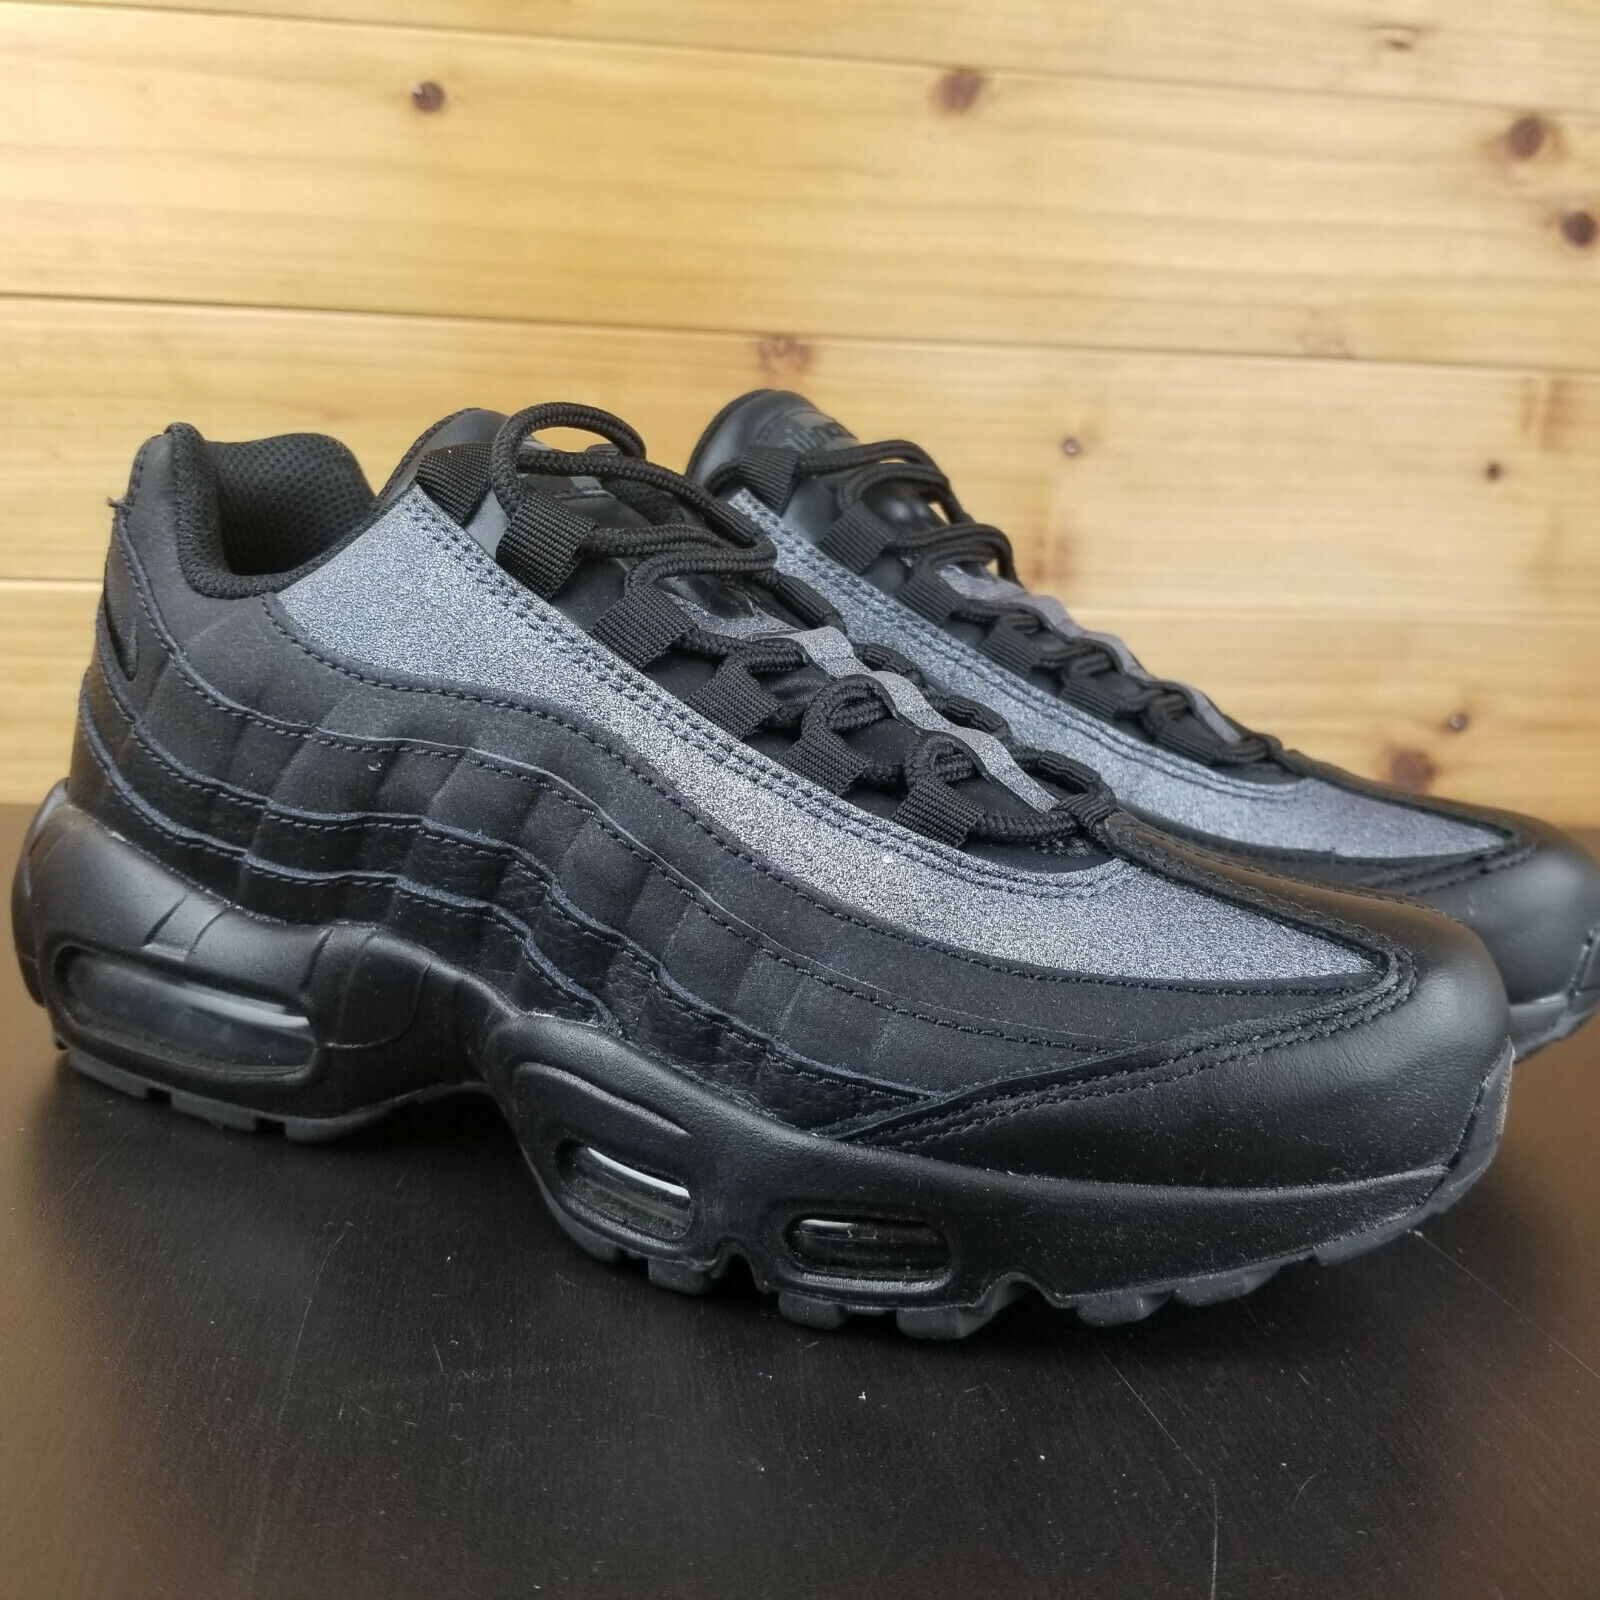 Nike Air Max 95 Women's shoes SE Glitter Black AT0068-001 Crystals 3M